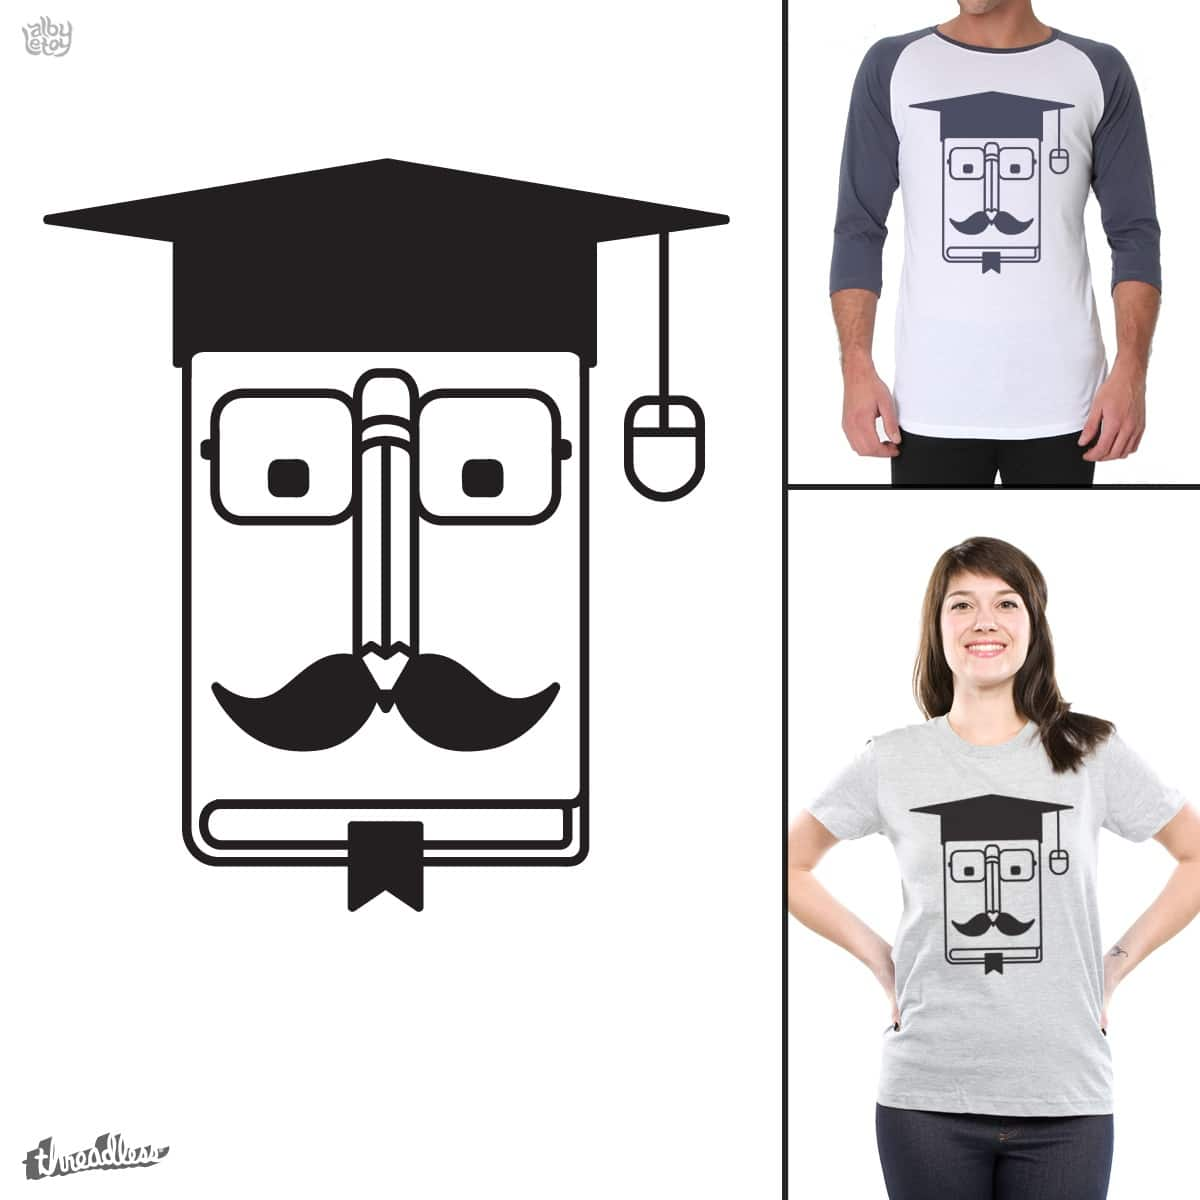 Internet Graduate by albyletoy on Threadless